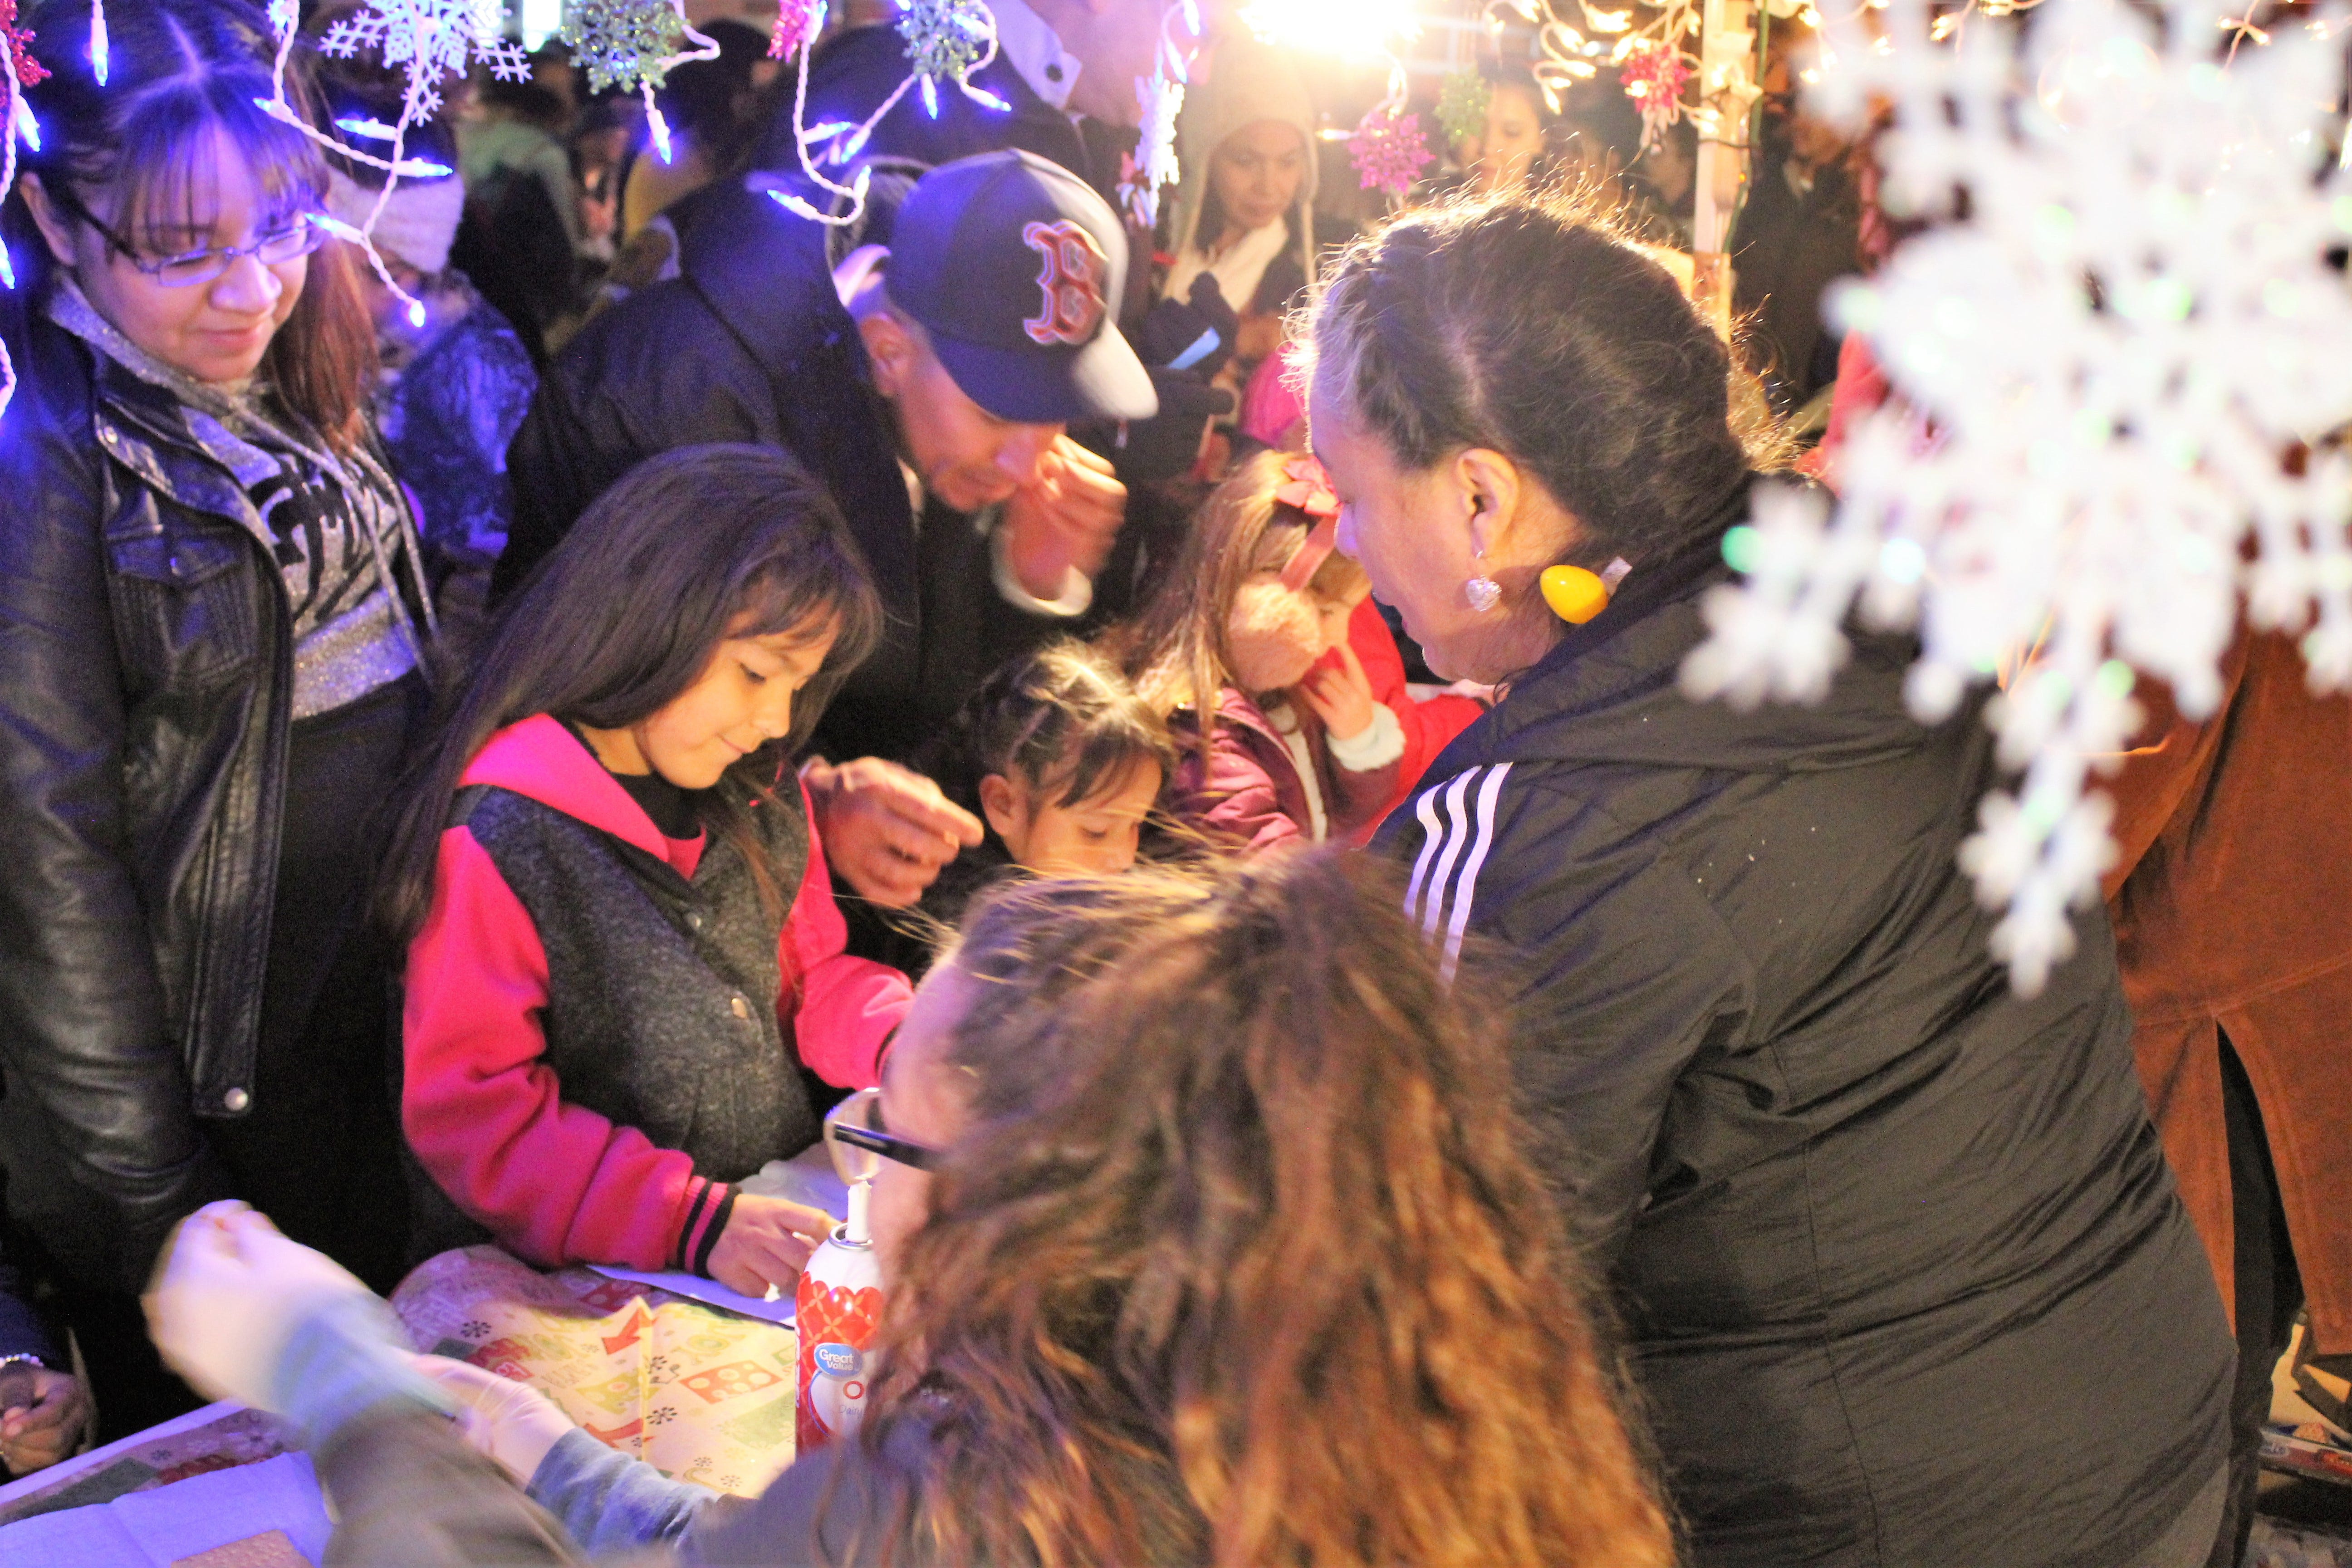 Utilities employees help deliver Christmas magic | Las Cruces Sun